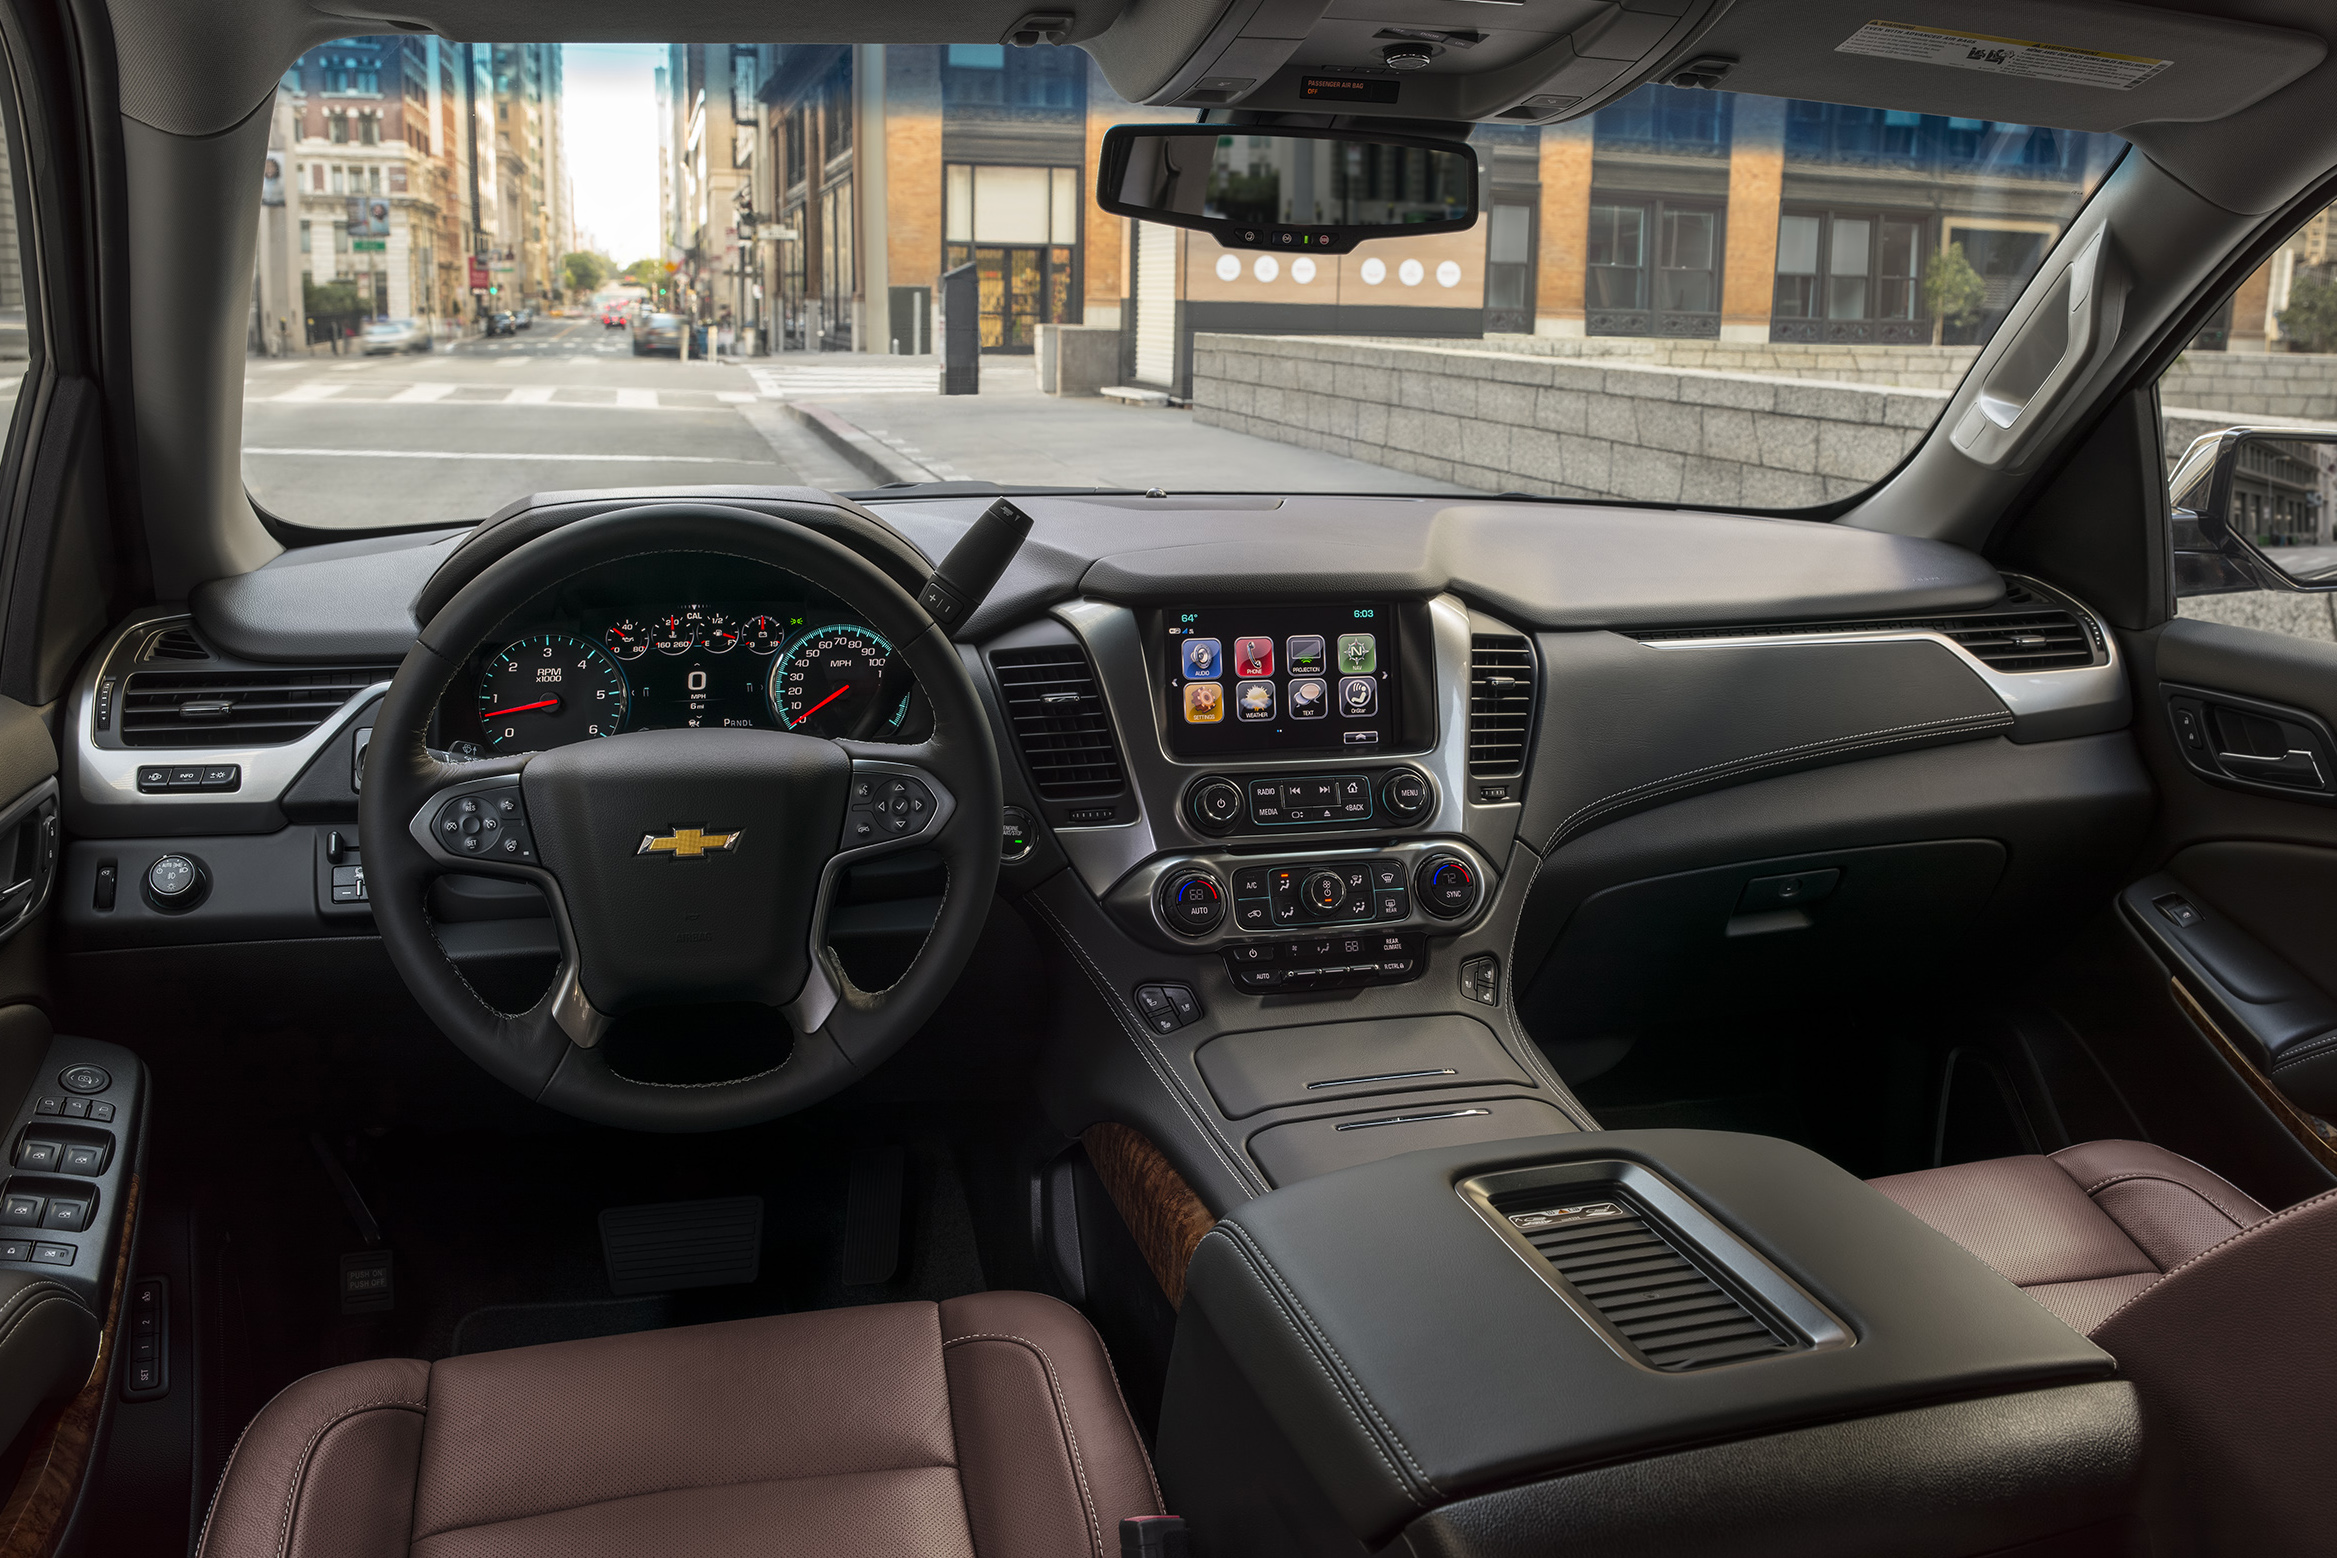 2019 Chevy Tahoe